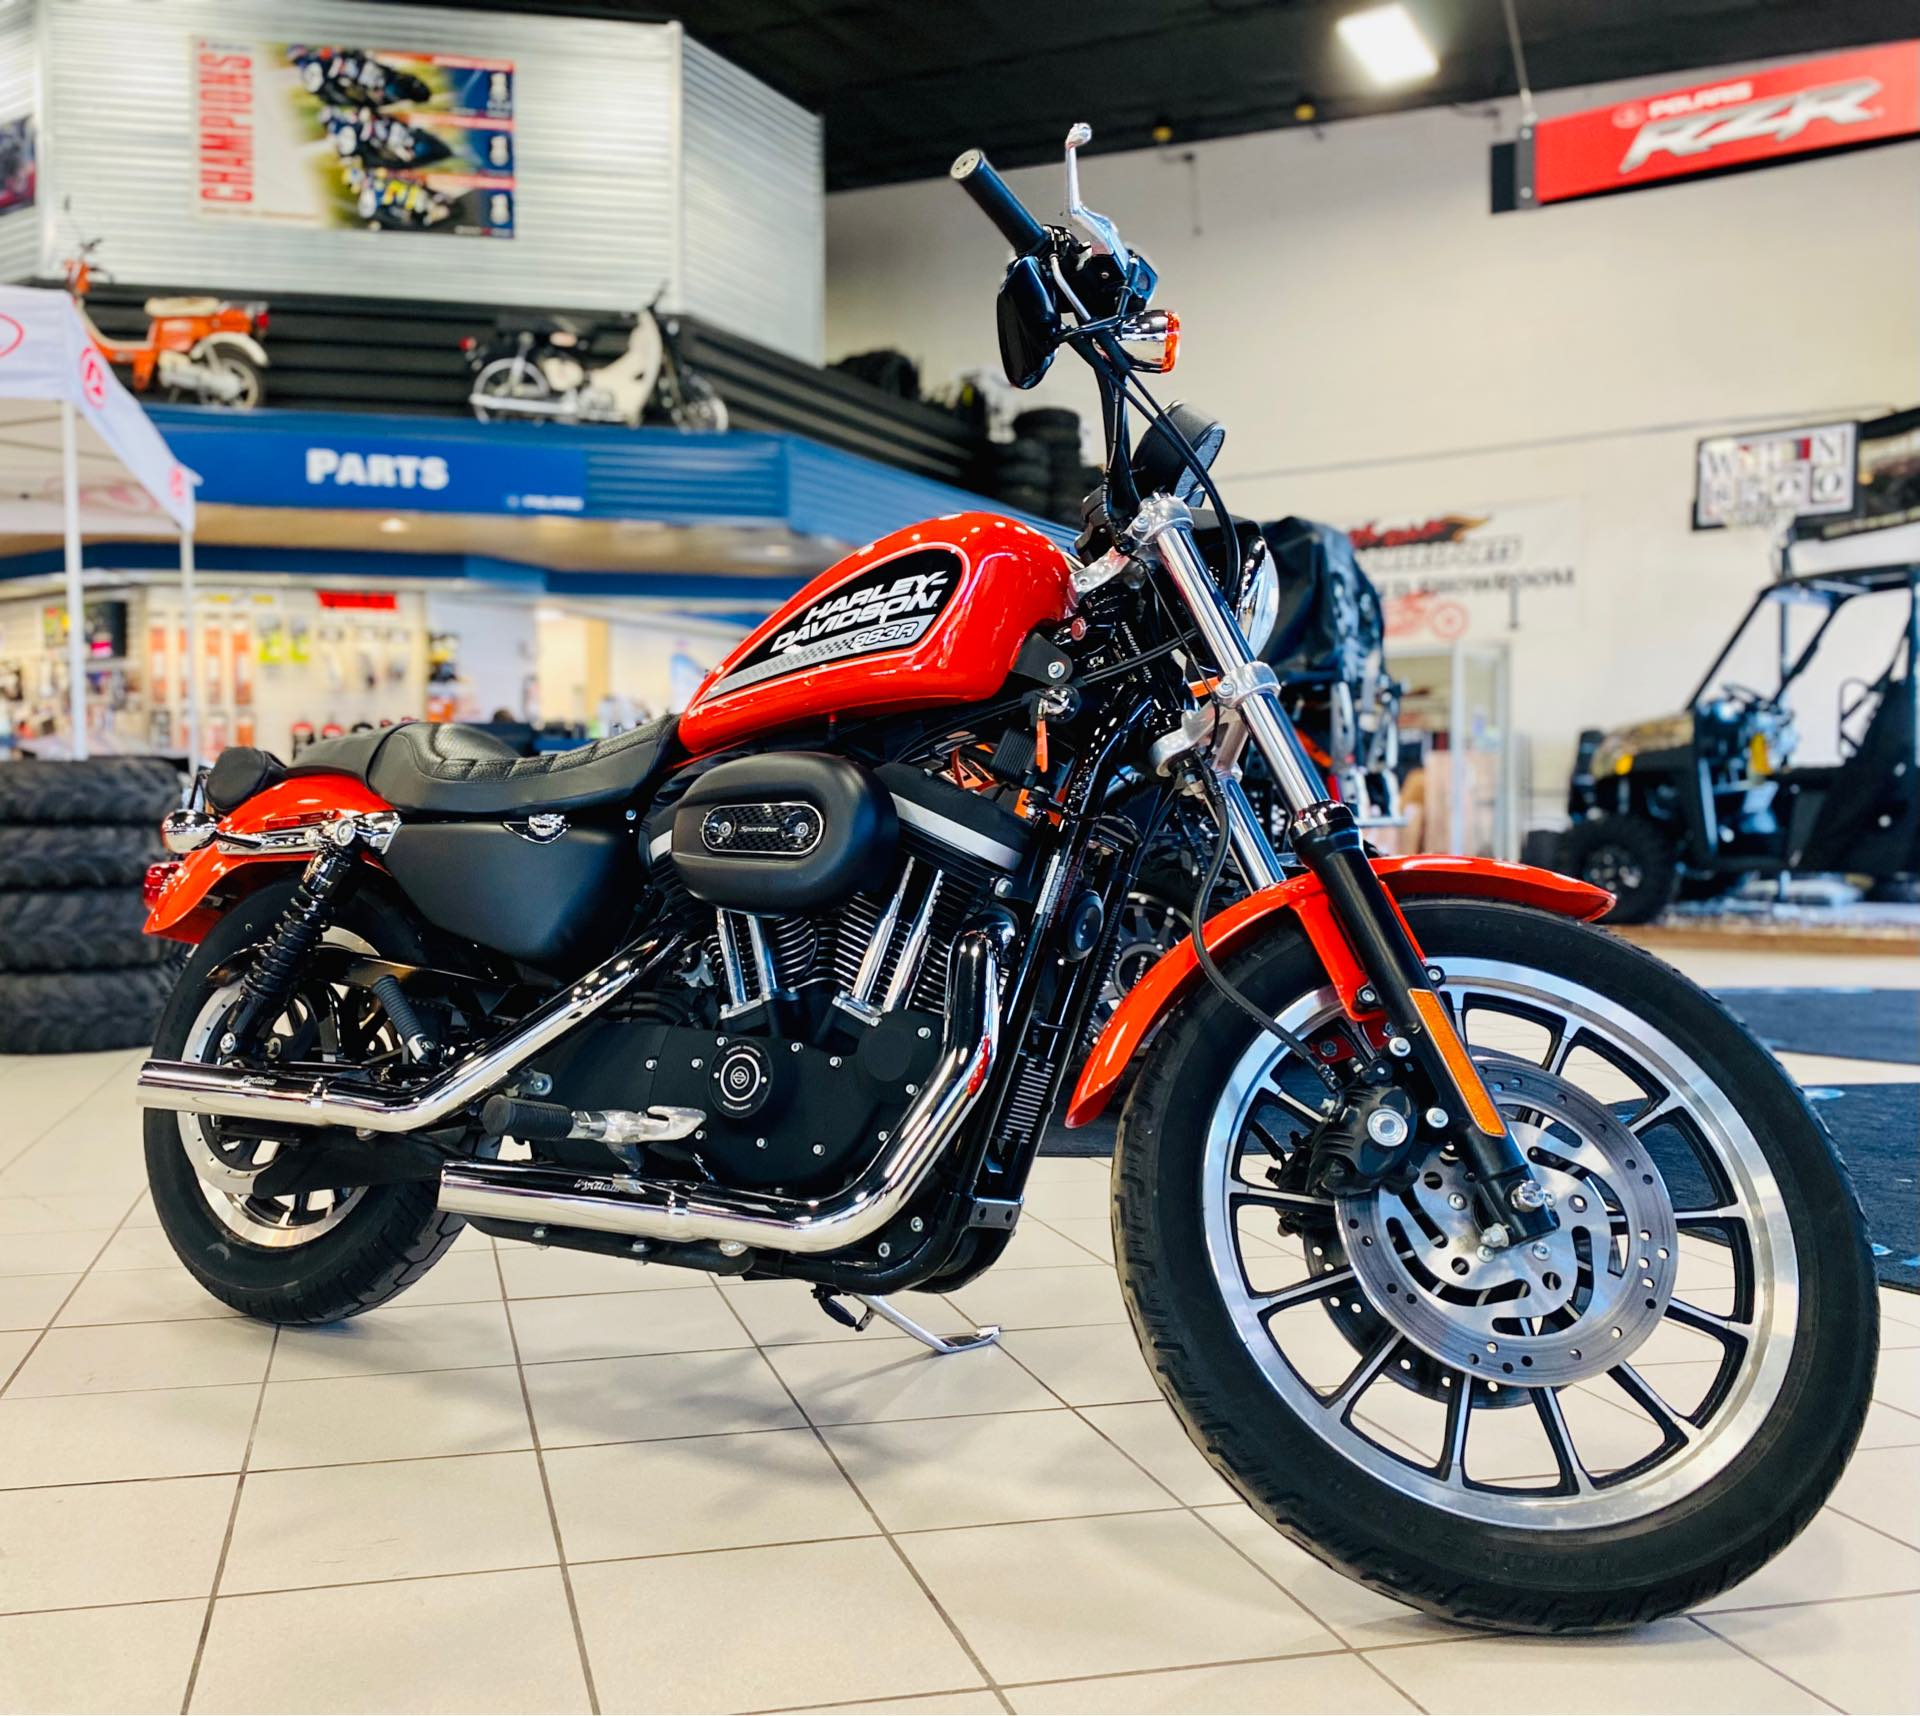 2006 Harley-Davidson Sportster 883R at Rod's Ride On Powersports